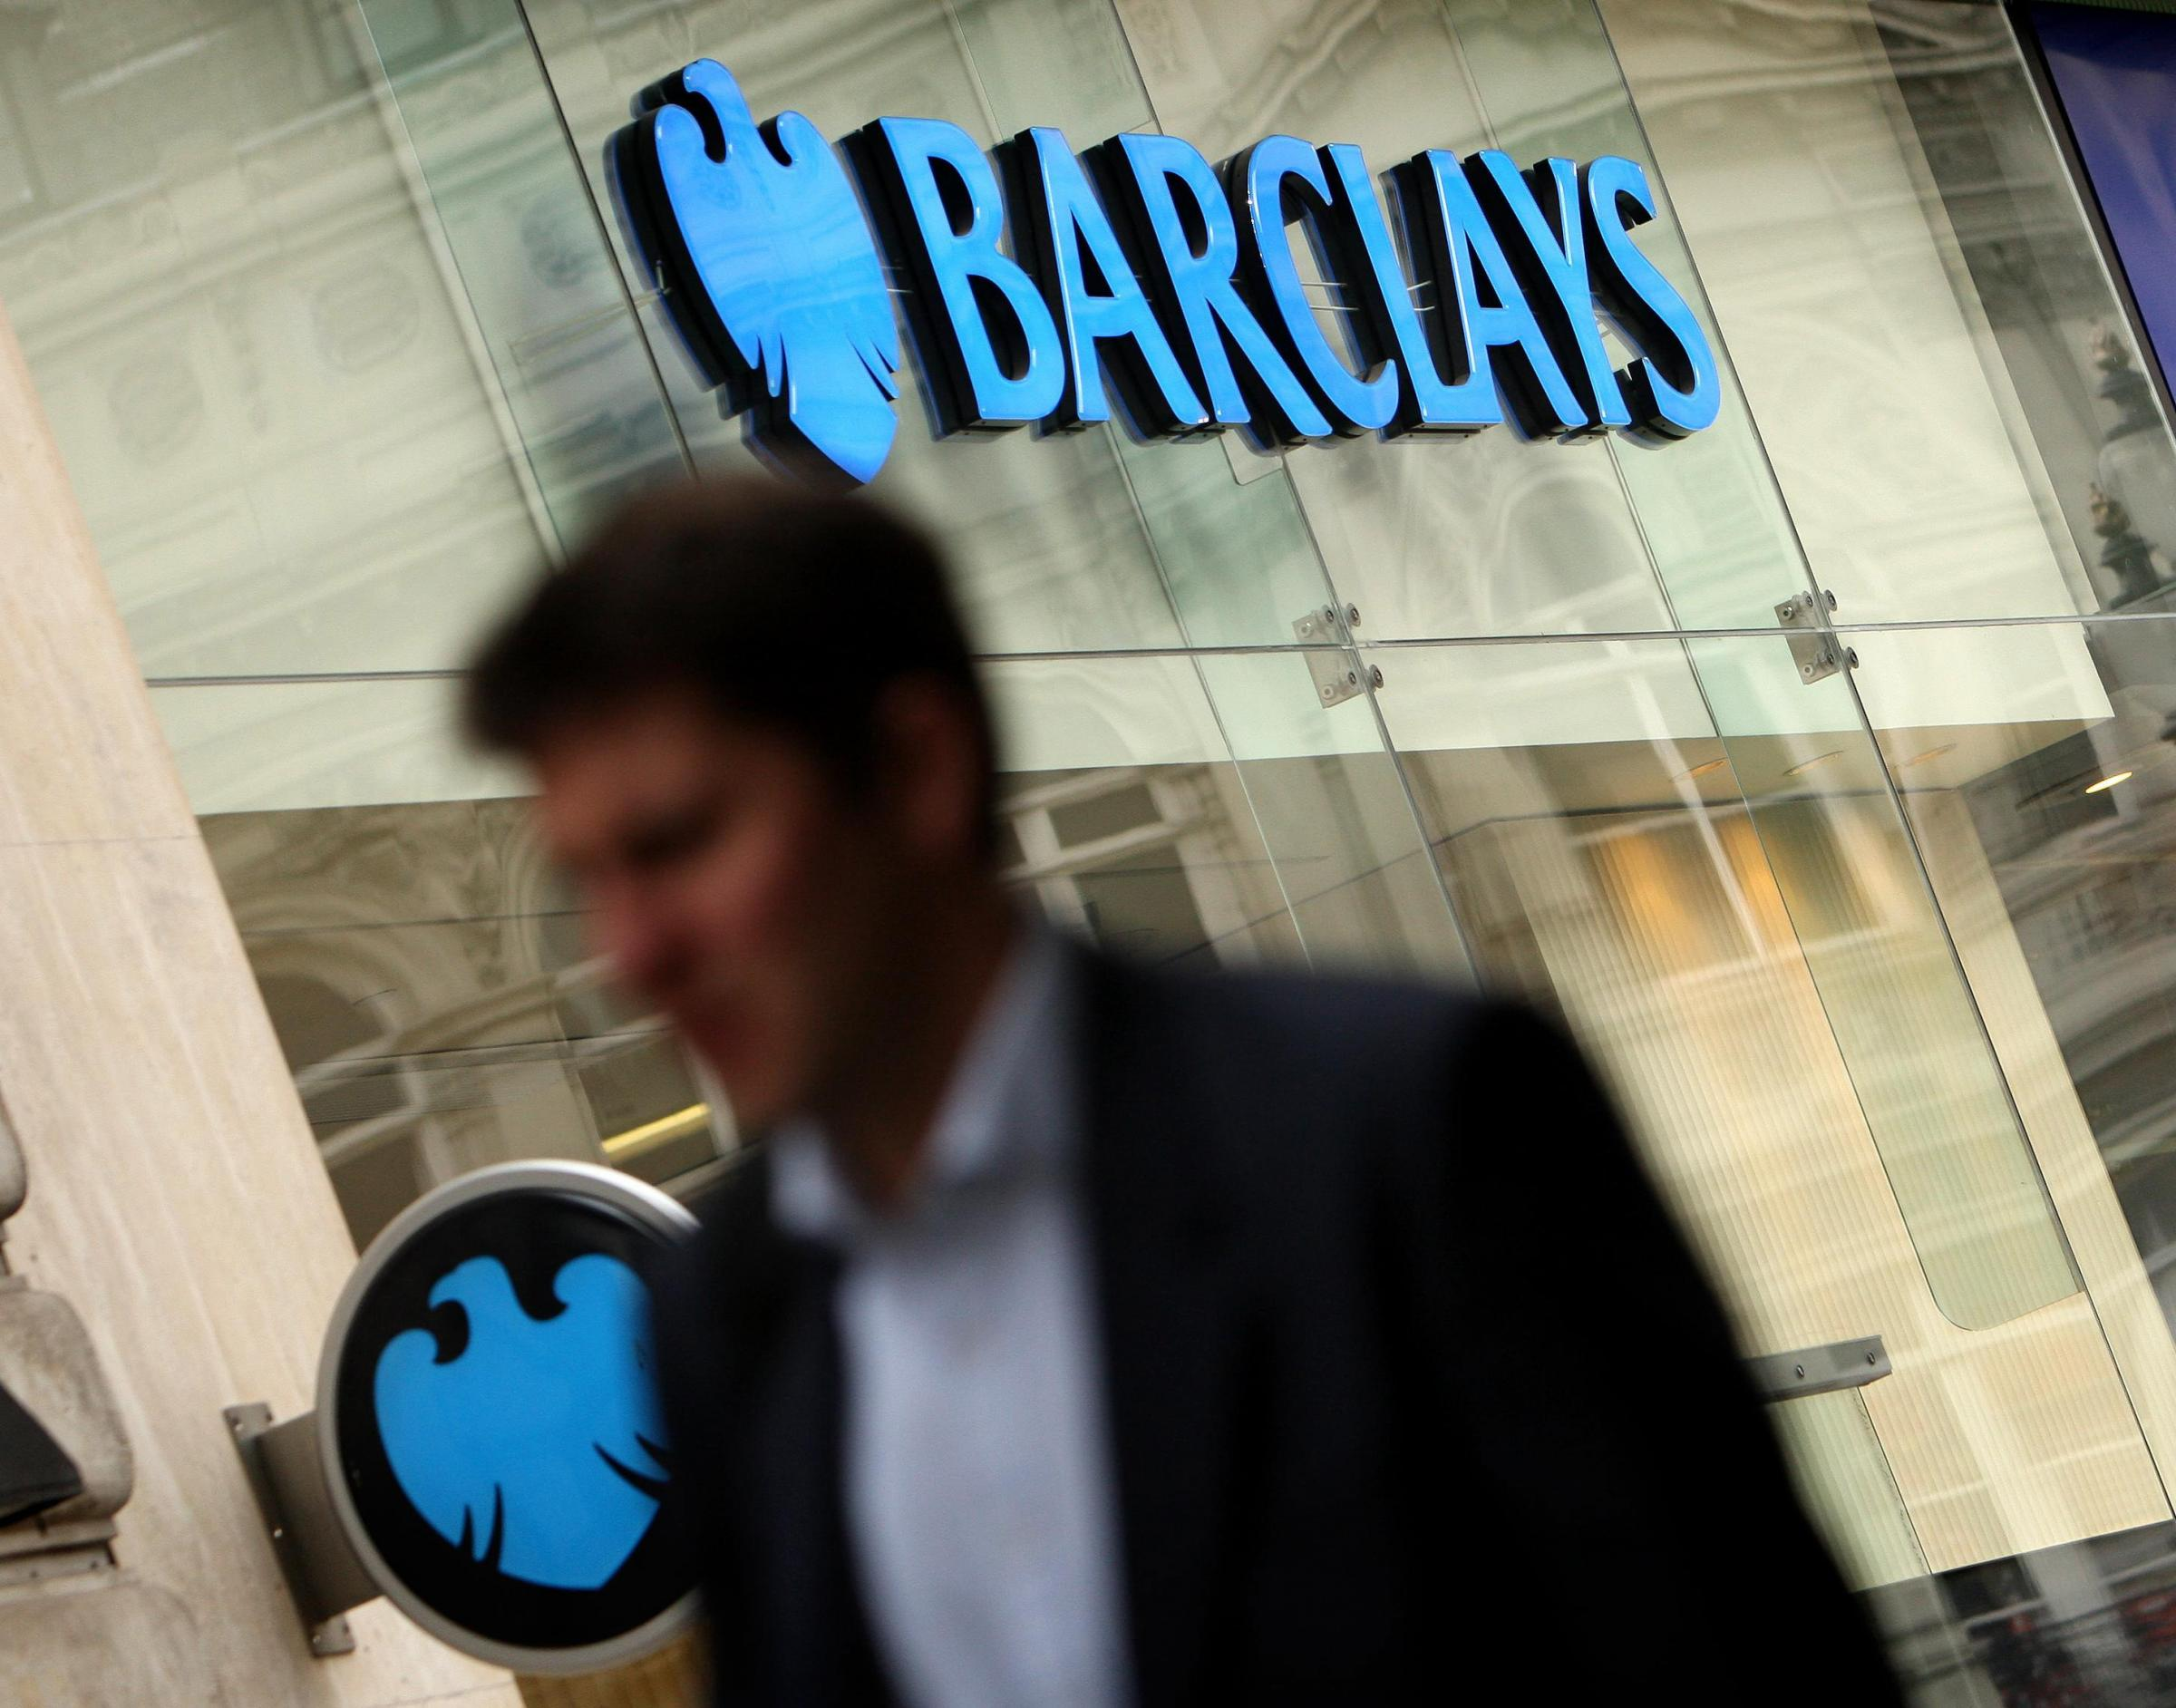 CONFIDENCE: Regional firm's confidence is higher than UK average, a Barclays survey has found. Dominic Lipinski/PA Wire